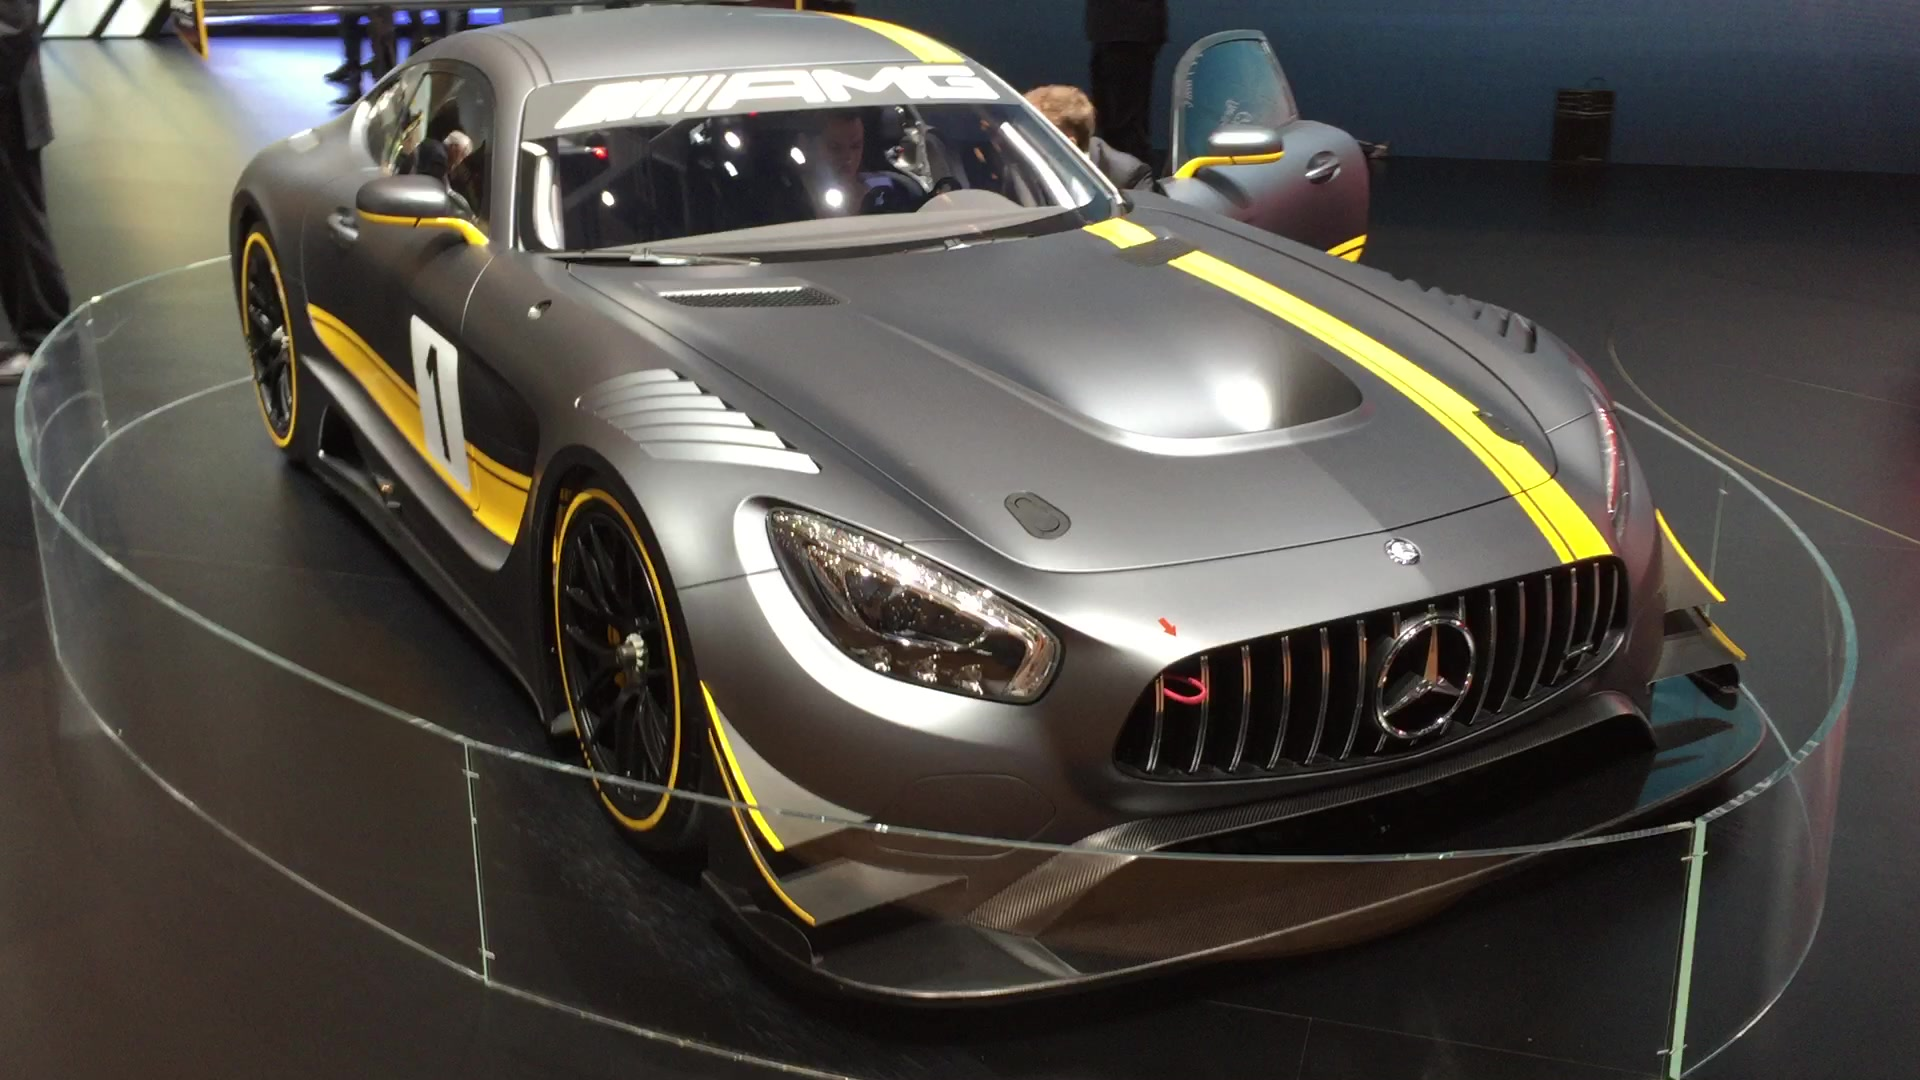 More Amg Gt Variants Are Coming Including A Gt4 Racecar